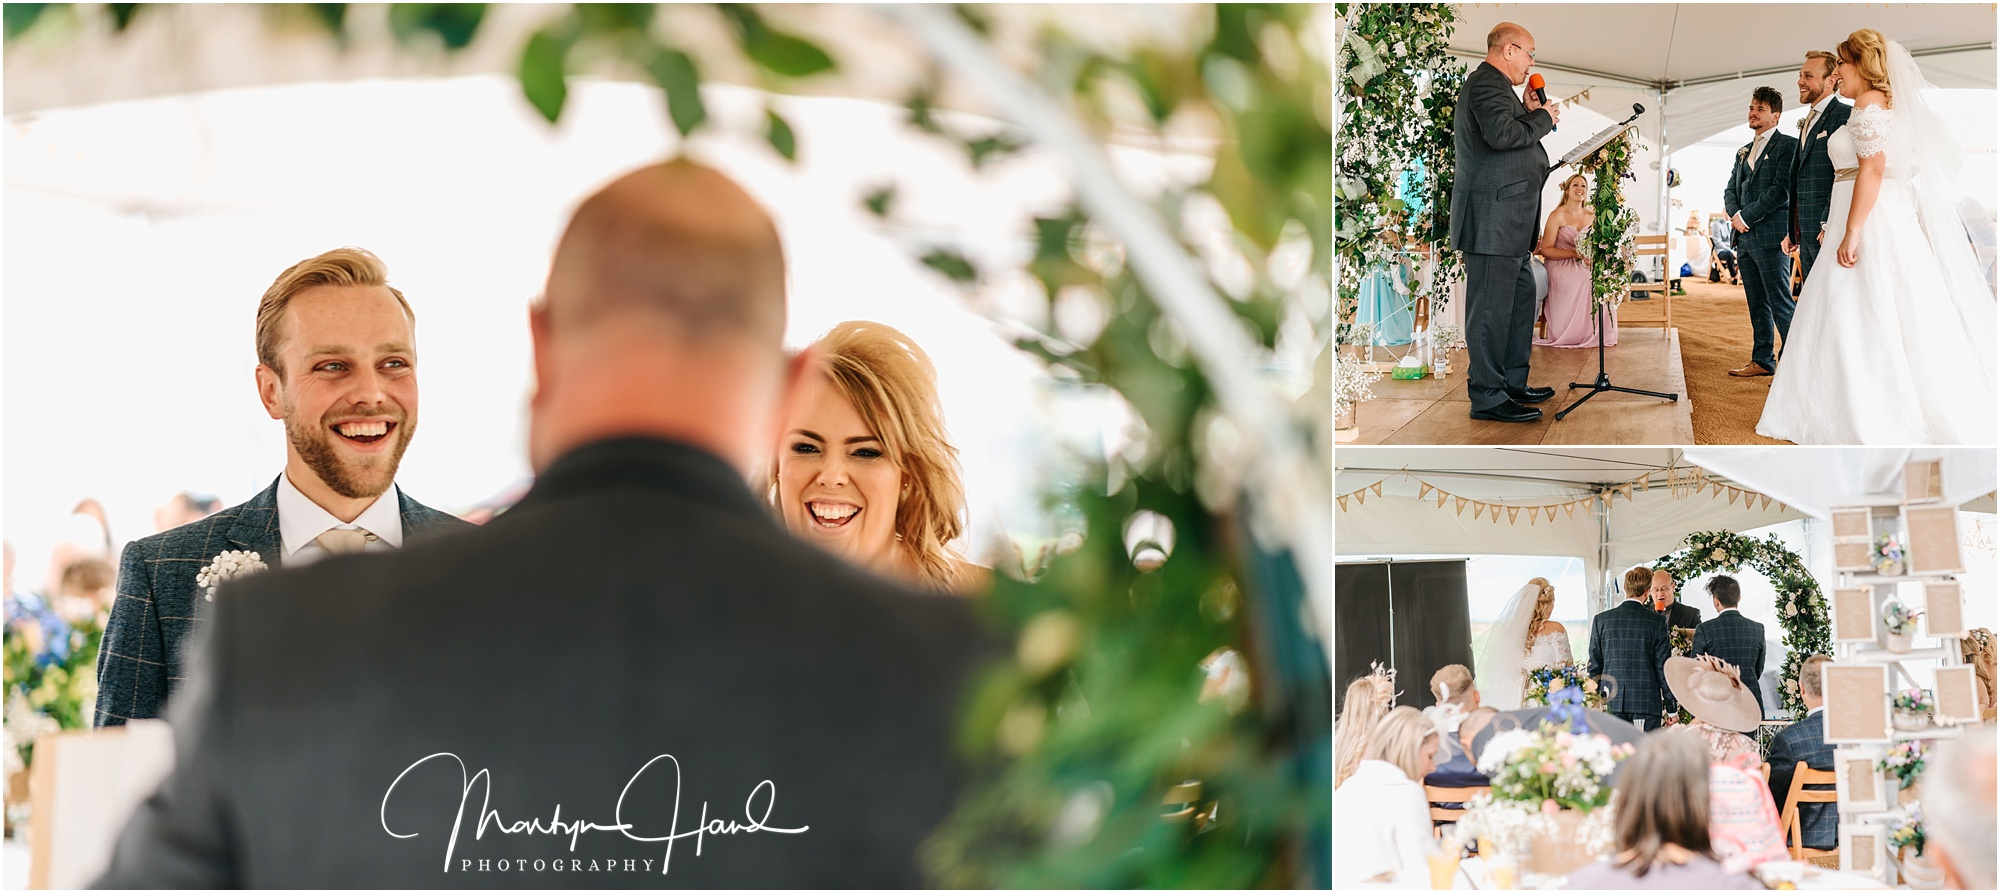 Laura & Mark Wedding Highlights-31.jpg